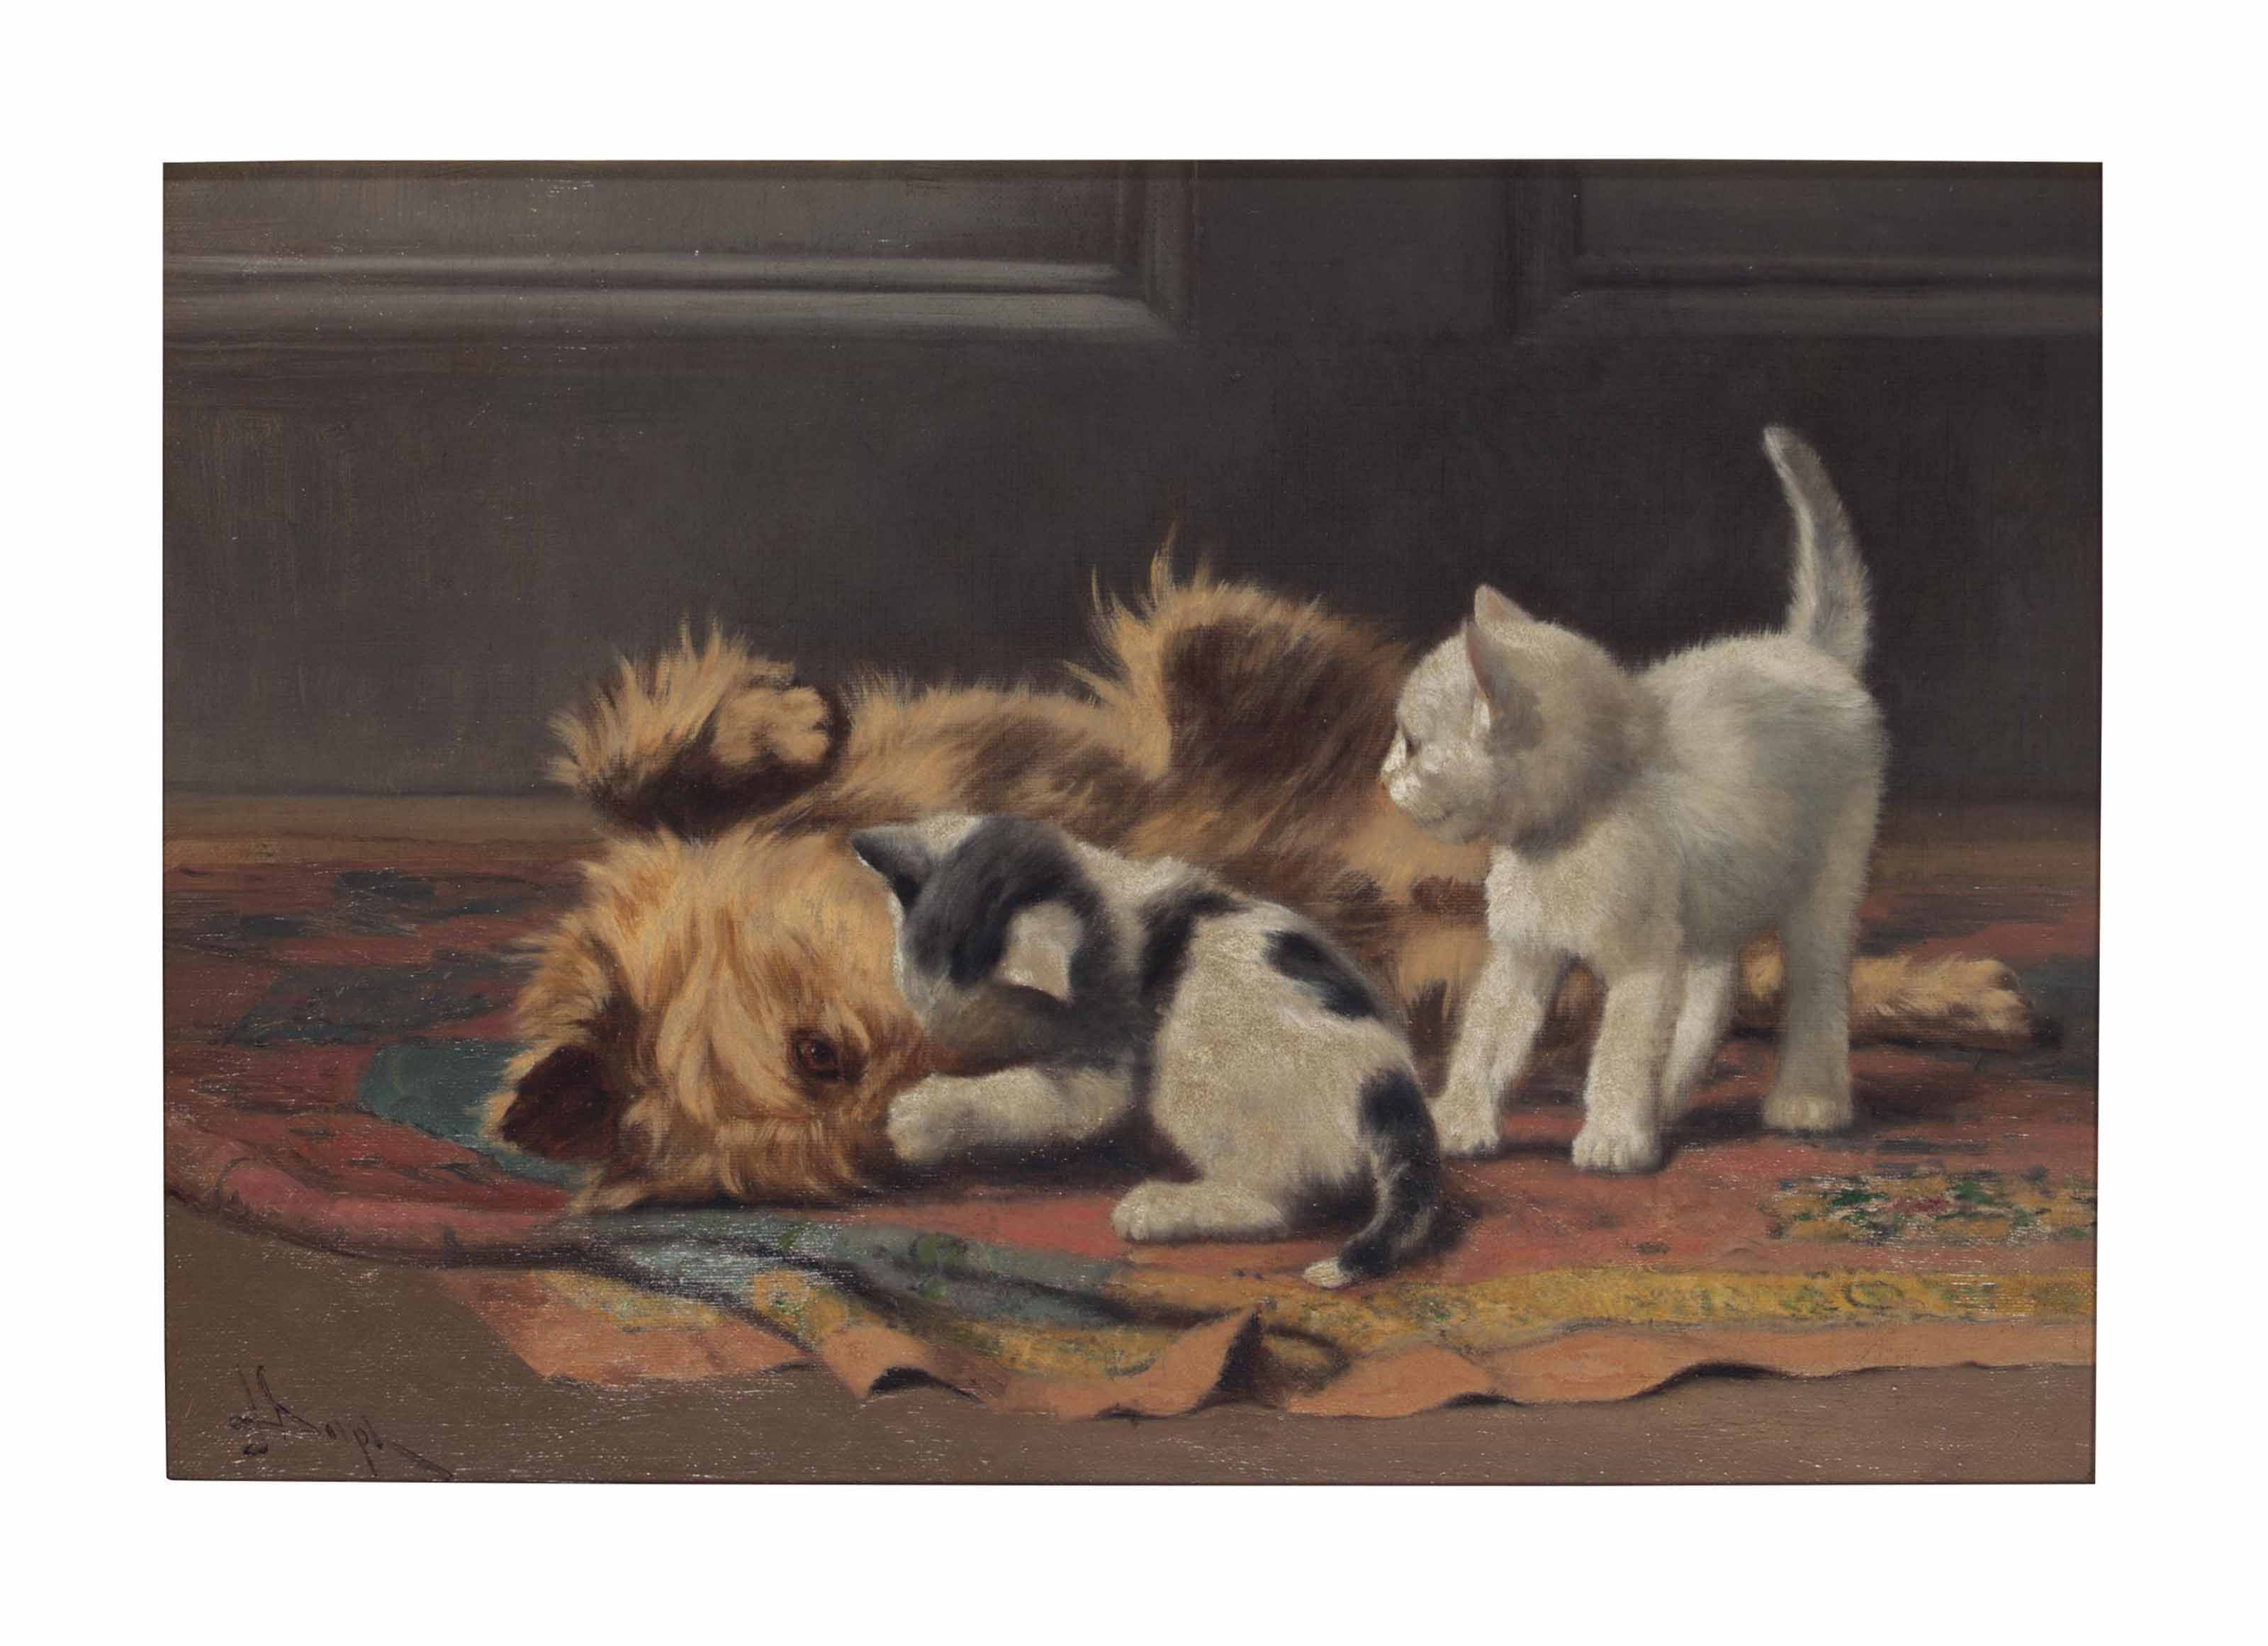 Playful Terrier and Kittens